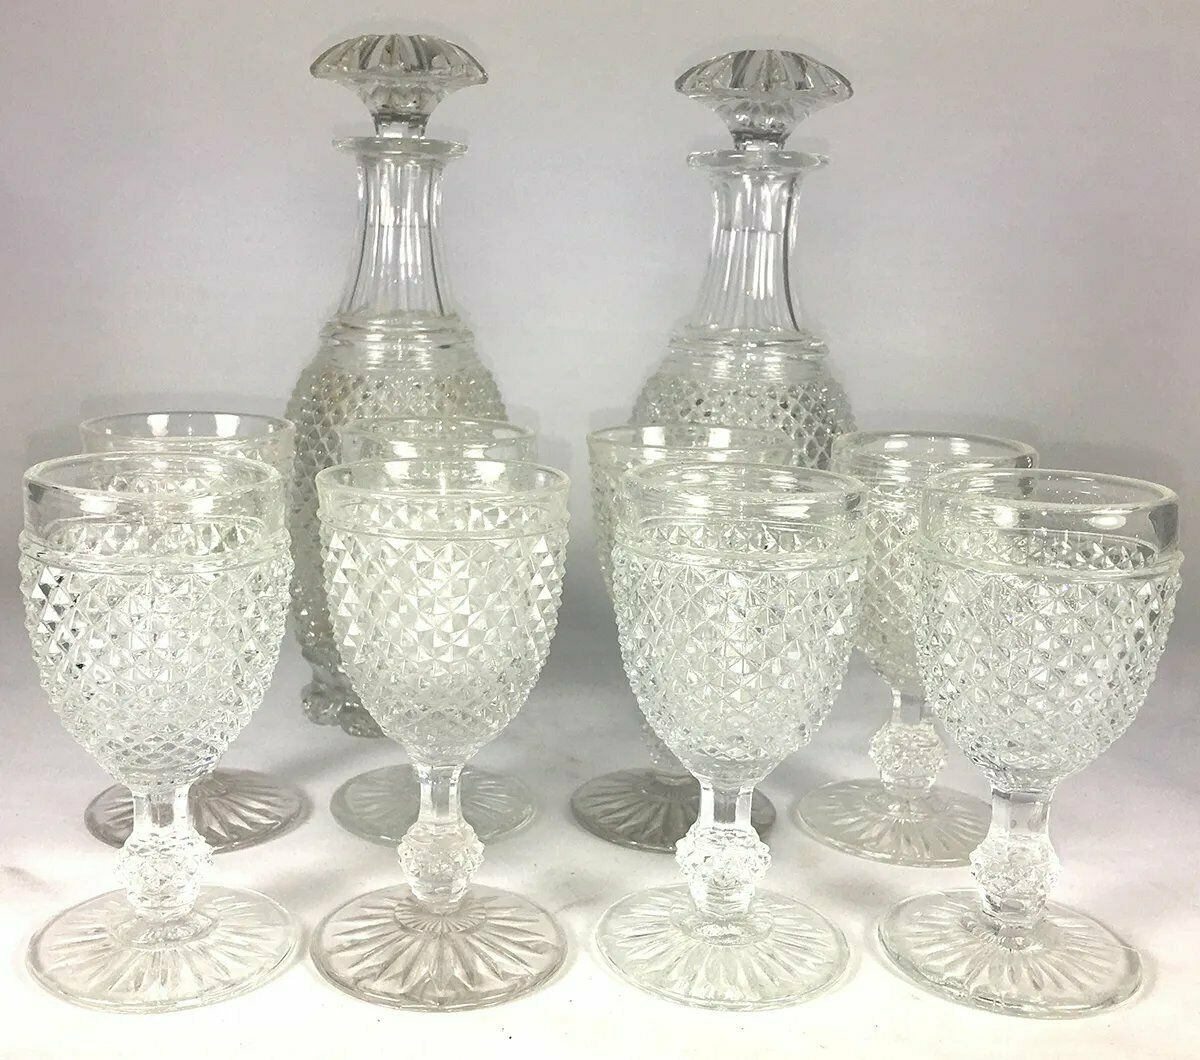 RARE Antique French Baccarat 12pc Crystal Liqueur Service, Diamond Point c. 1830